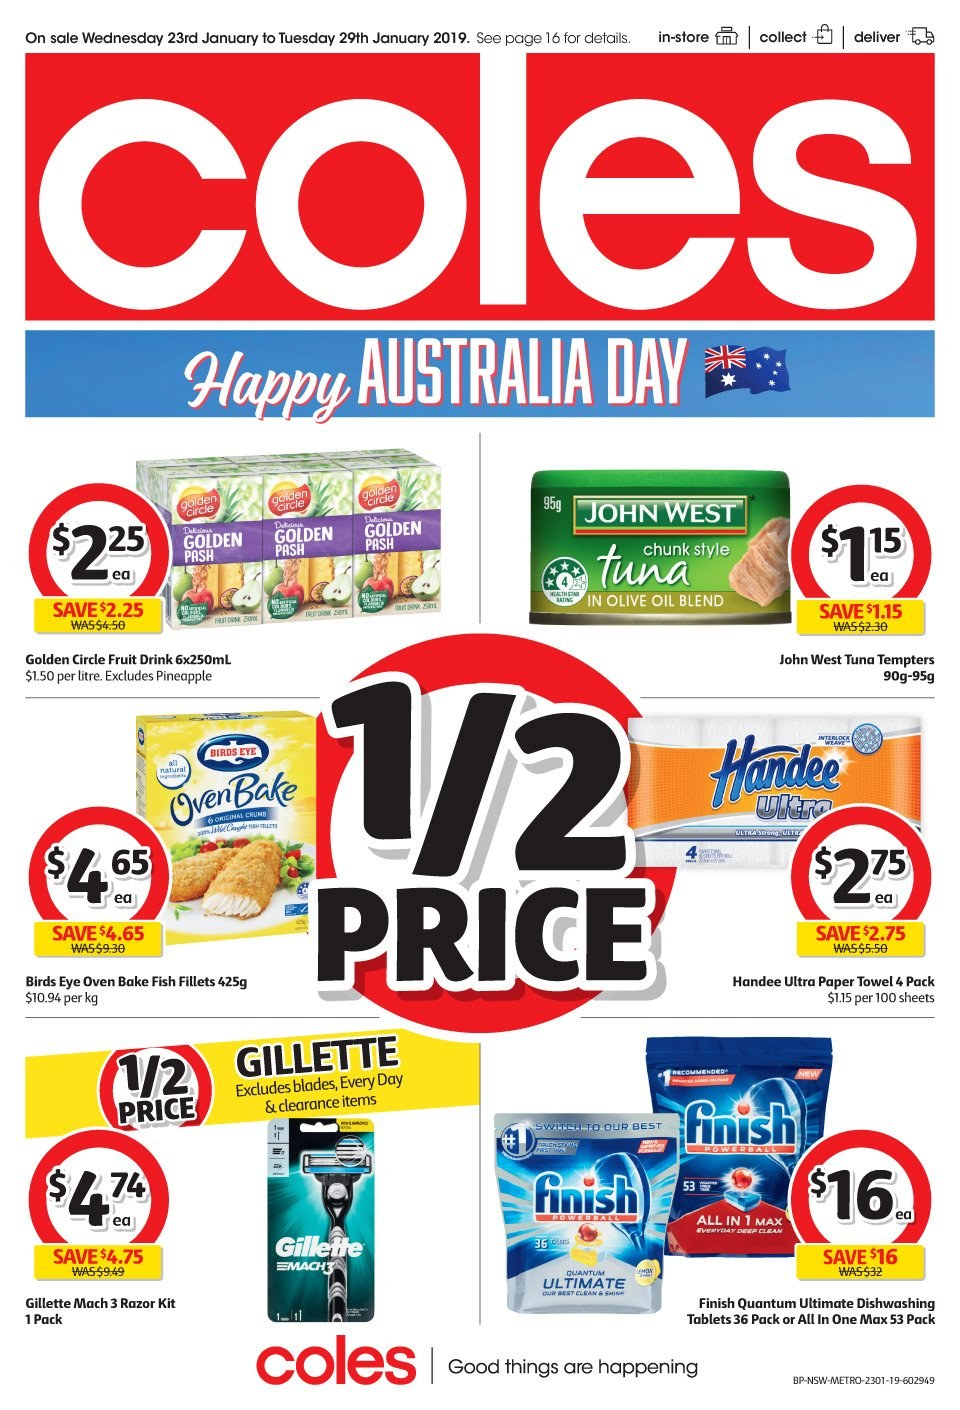 Coles catalogue and weekly specials 23 1 2019 - 29 1 2019